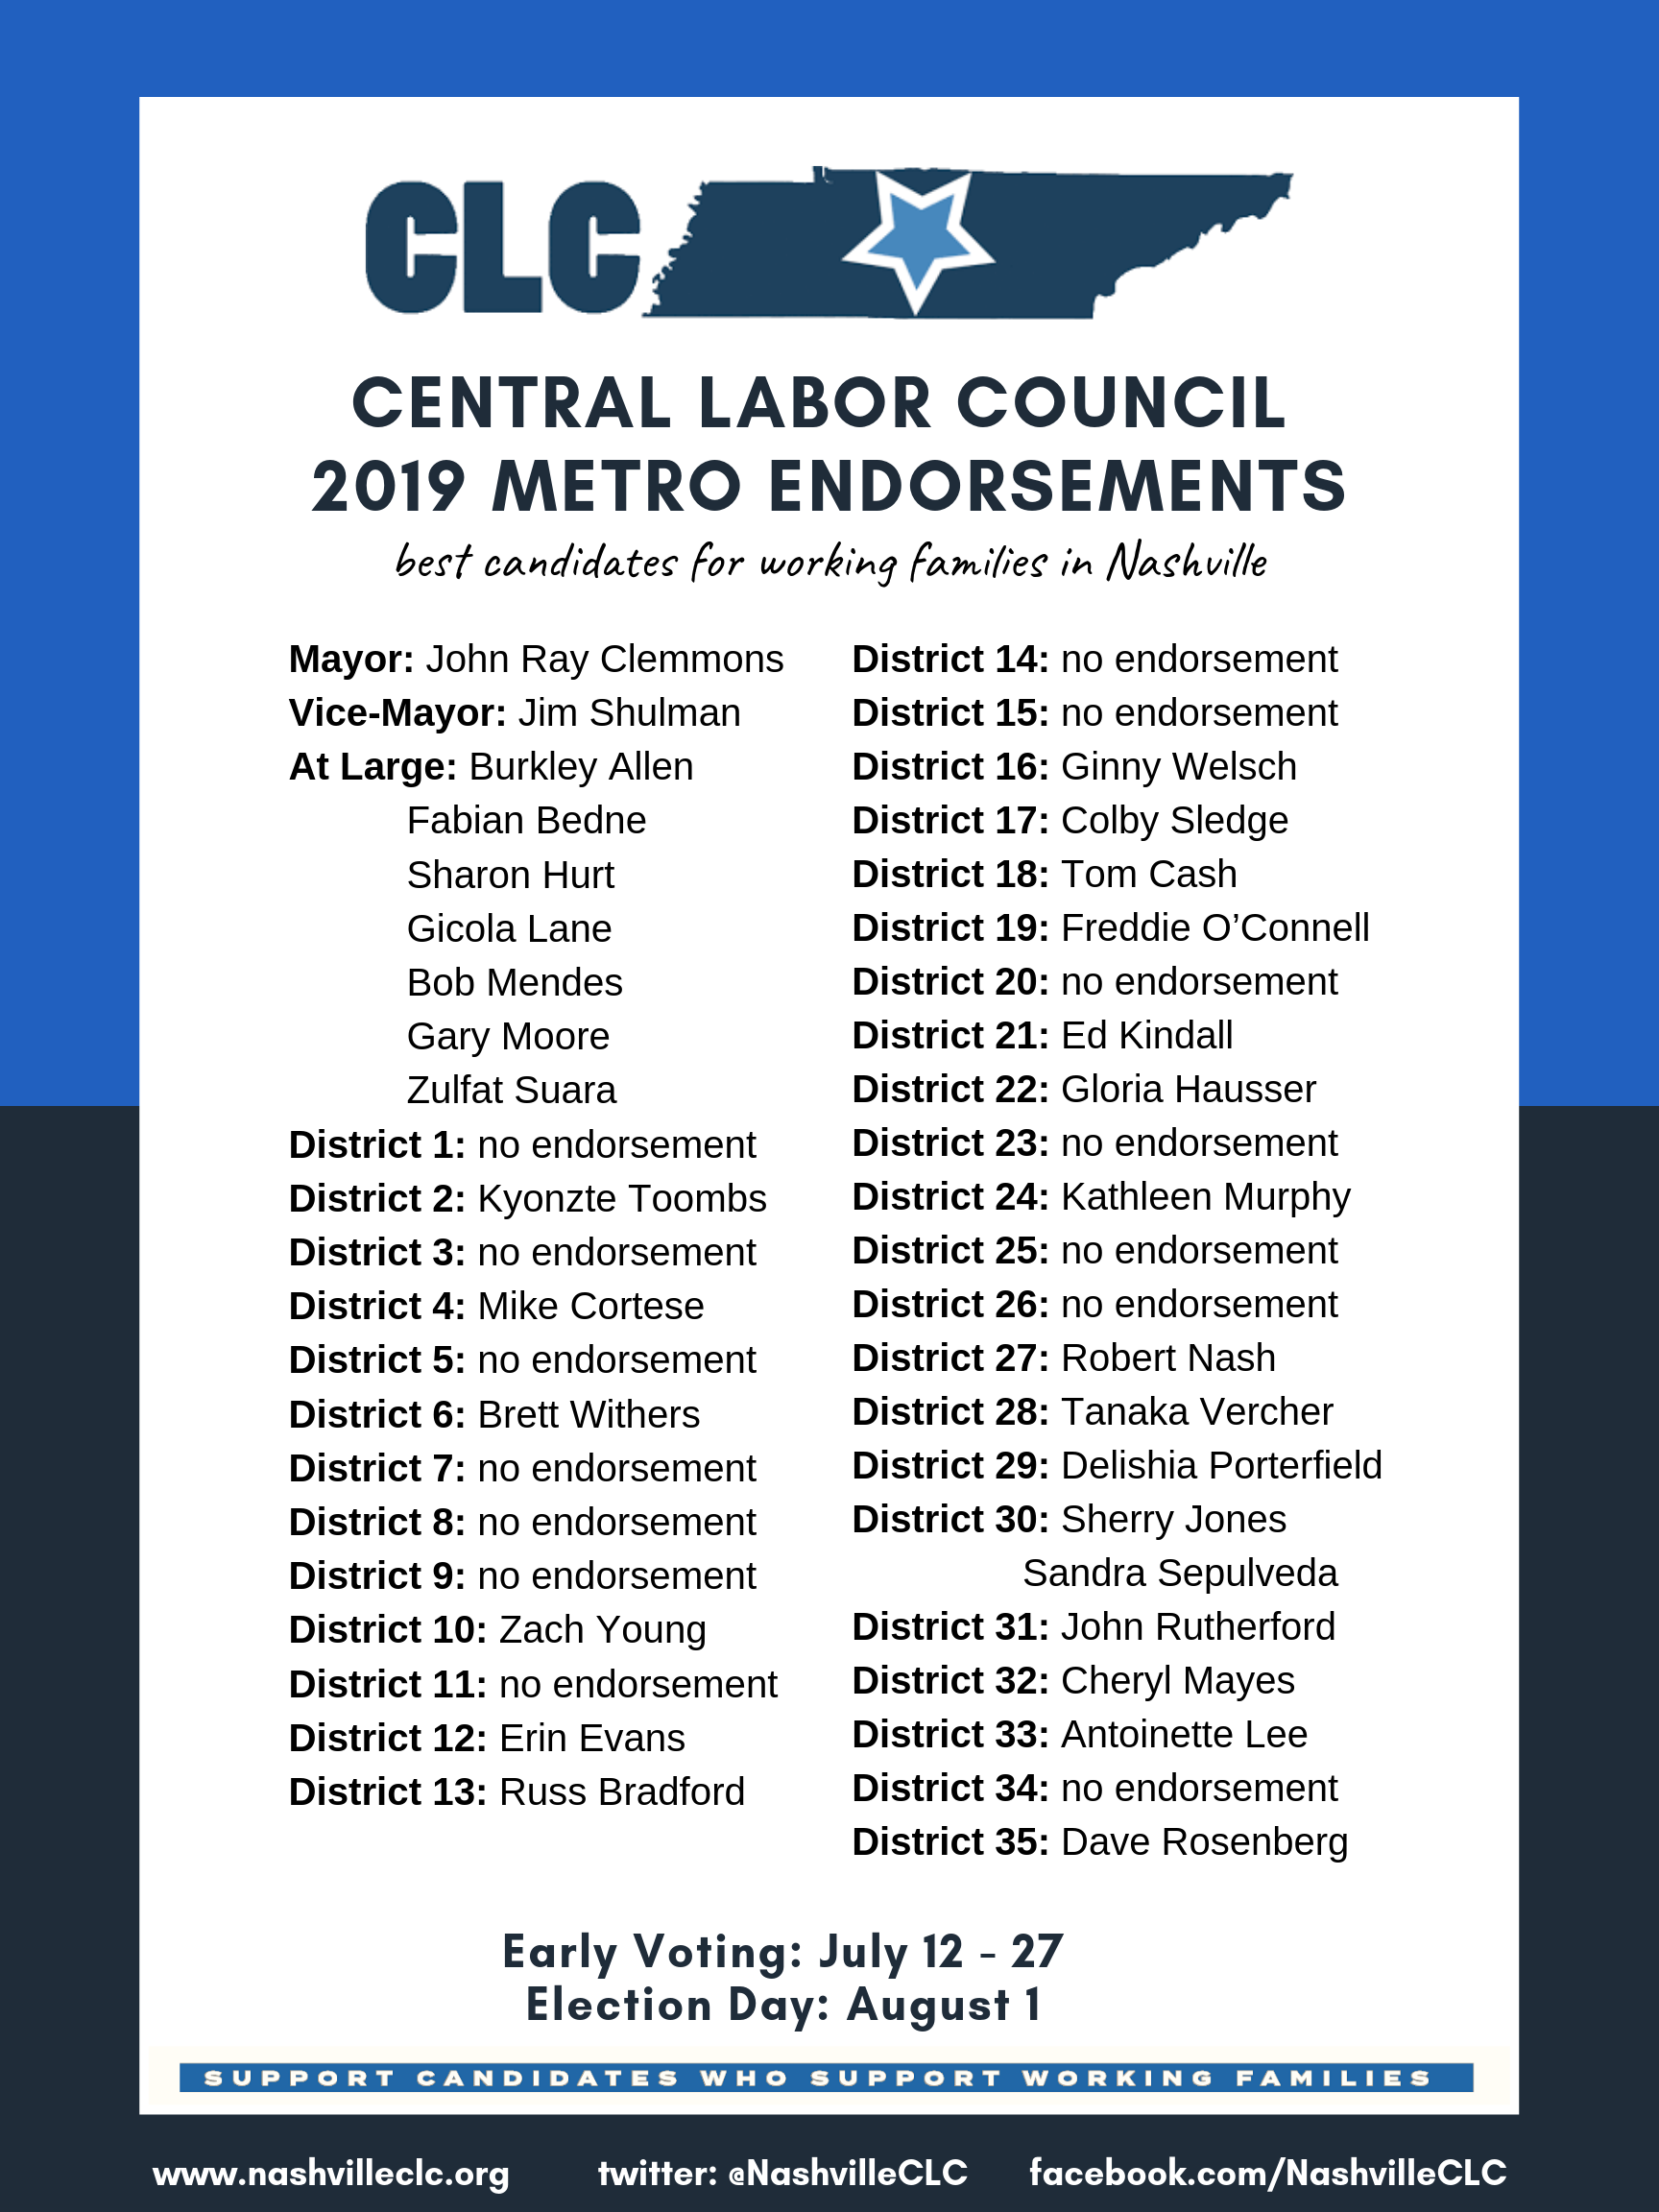 Updated_CLC_2019_METRO_NASHVILLE_ENDORSEMENTS.png